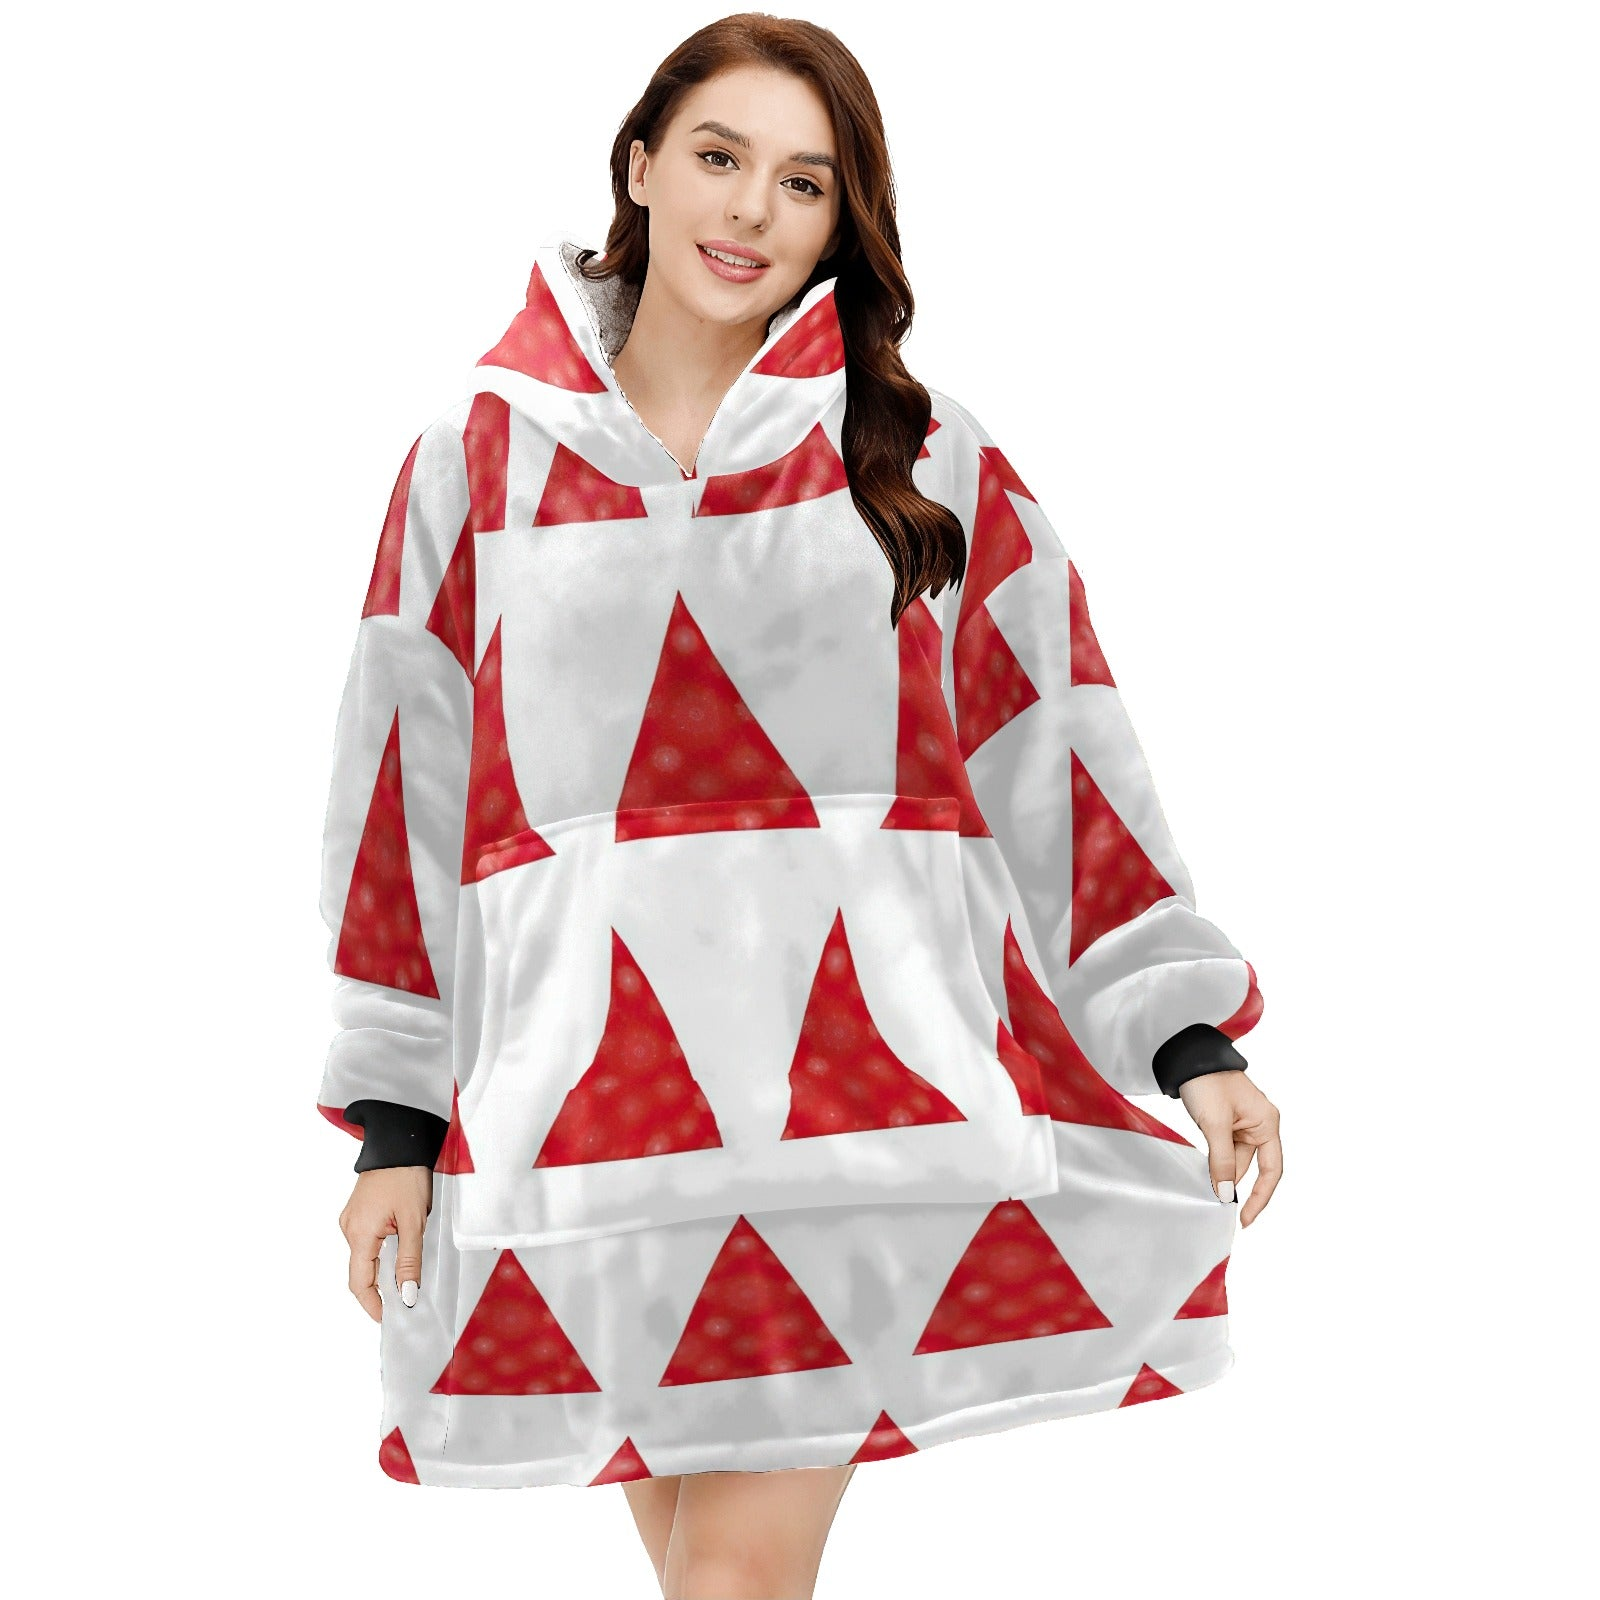 Red Minimalist Christmas Tree Hoodie Blanket Sweatshirt